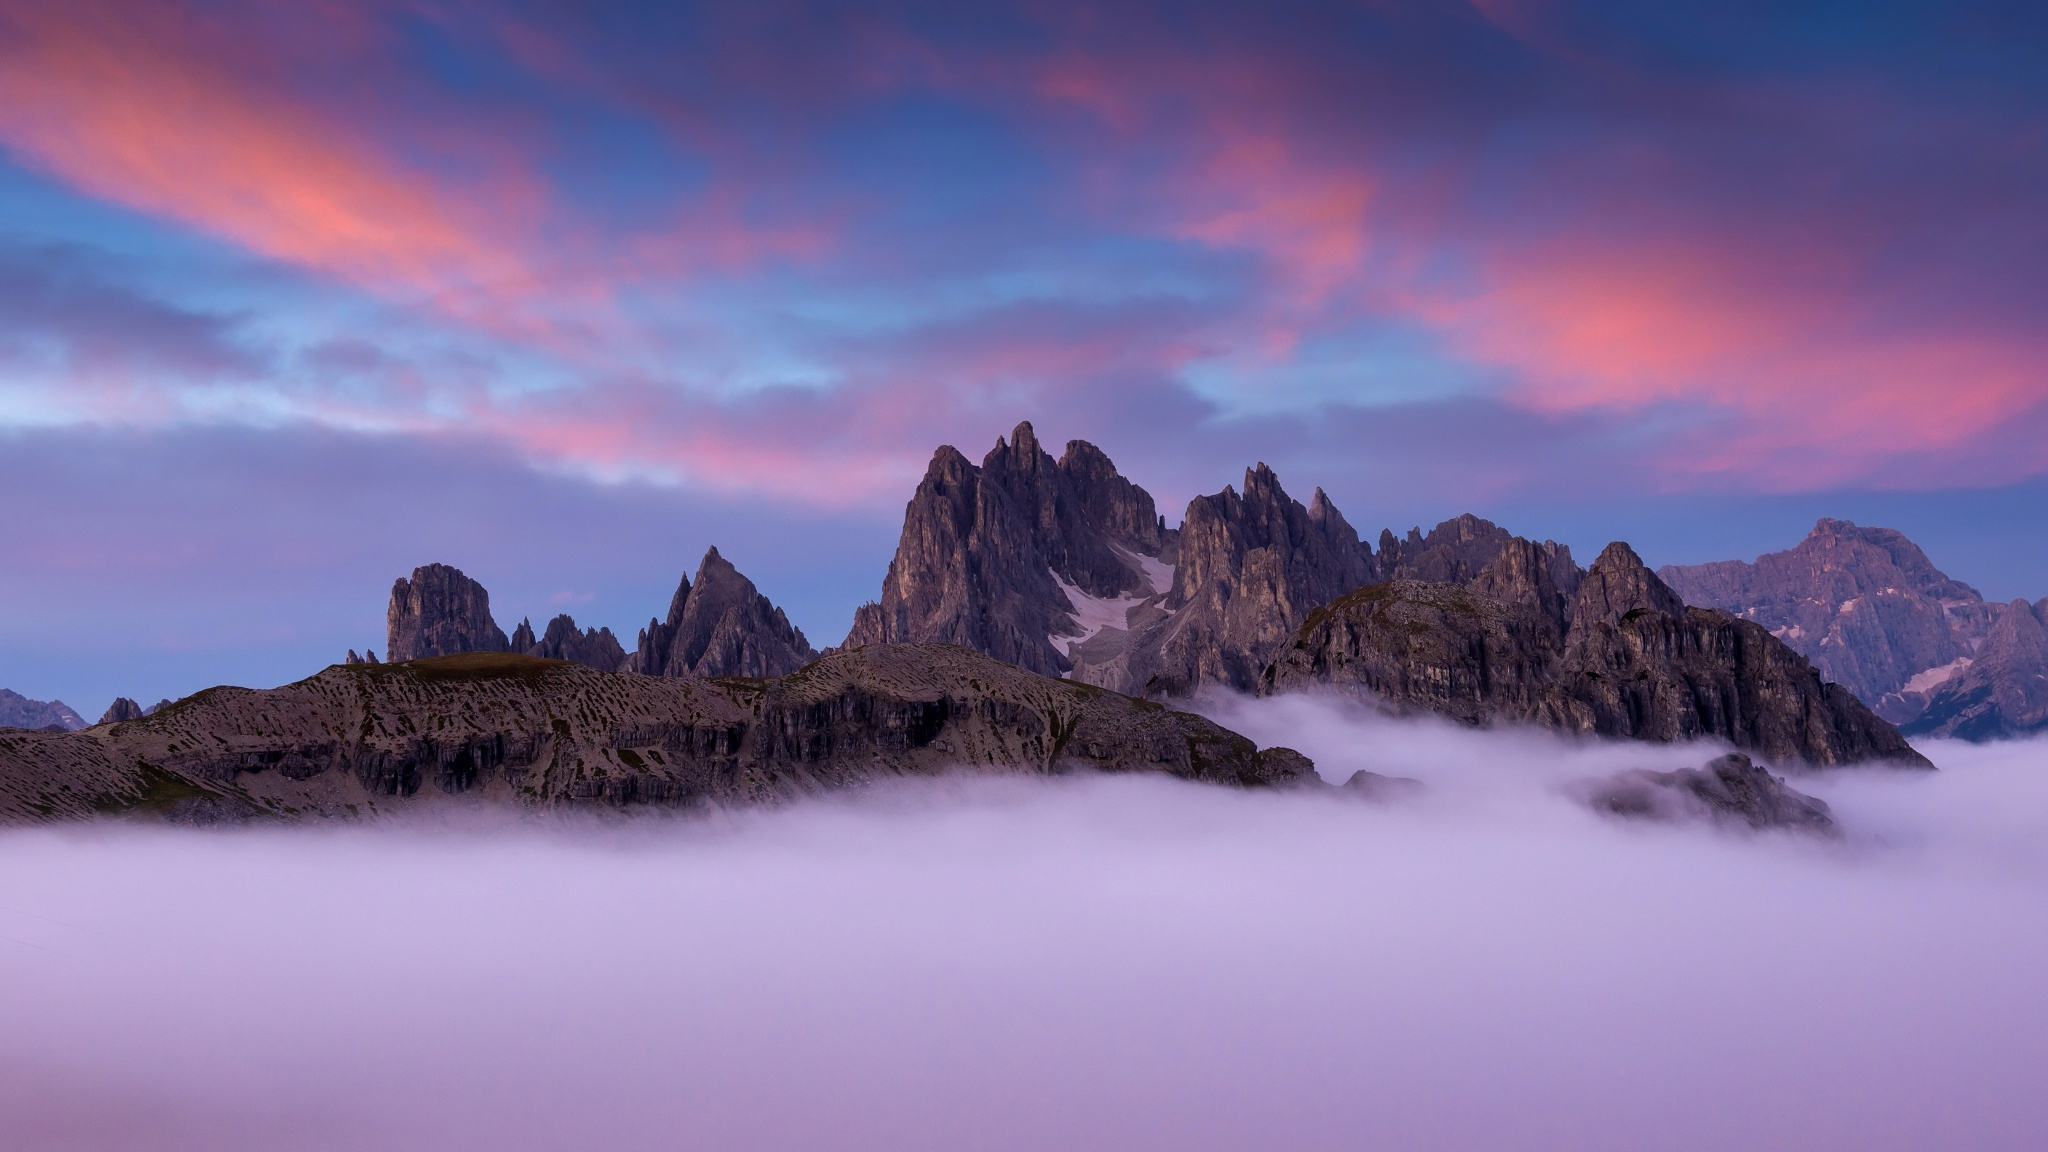 Iphone 5 Wallpaper Pink Fog And Sunset Over Dolomite Mountains In Italy Full Hd